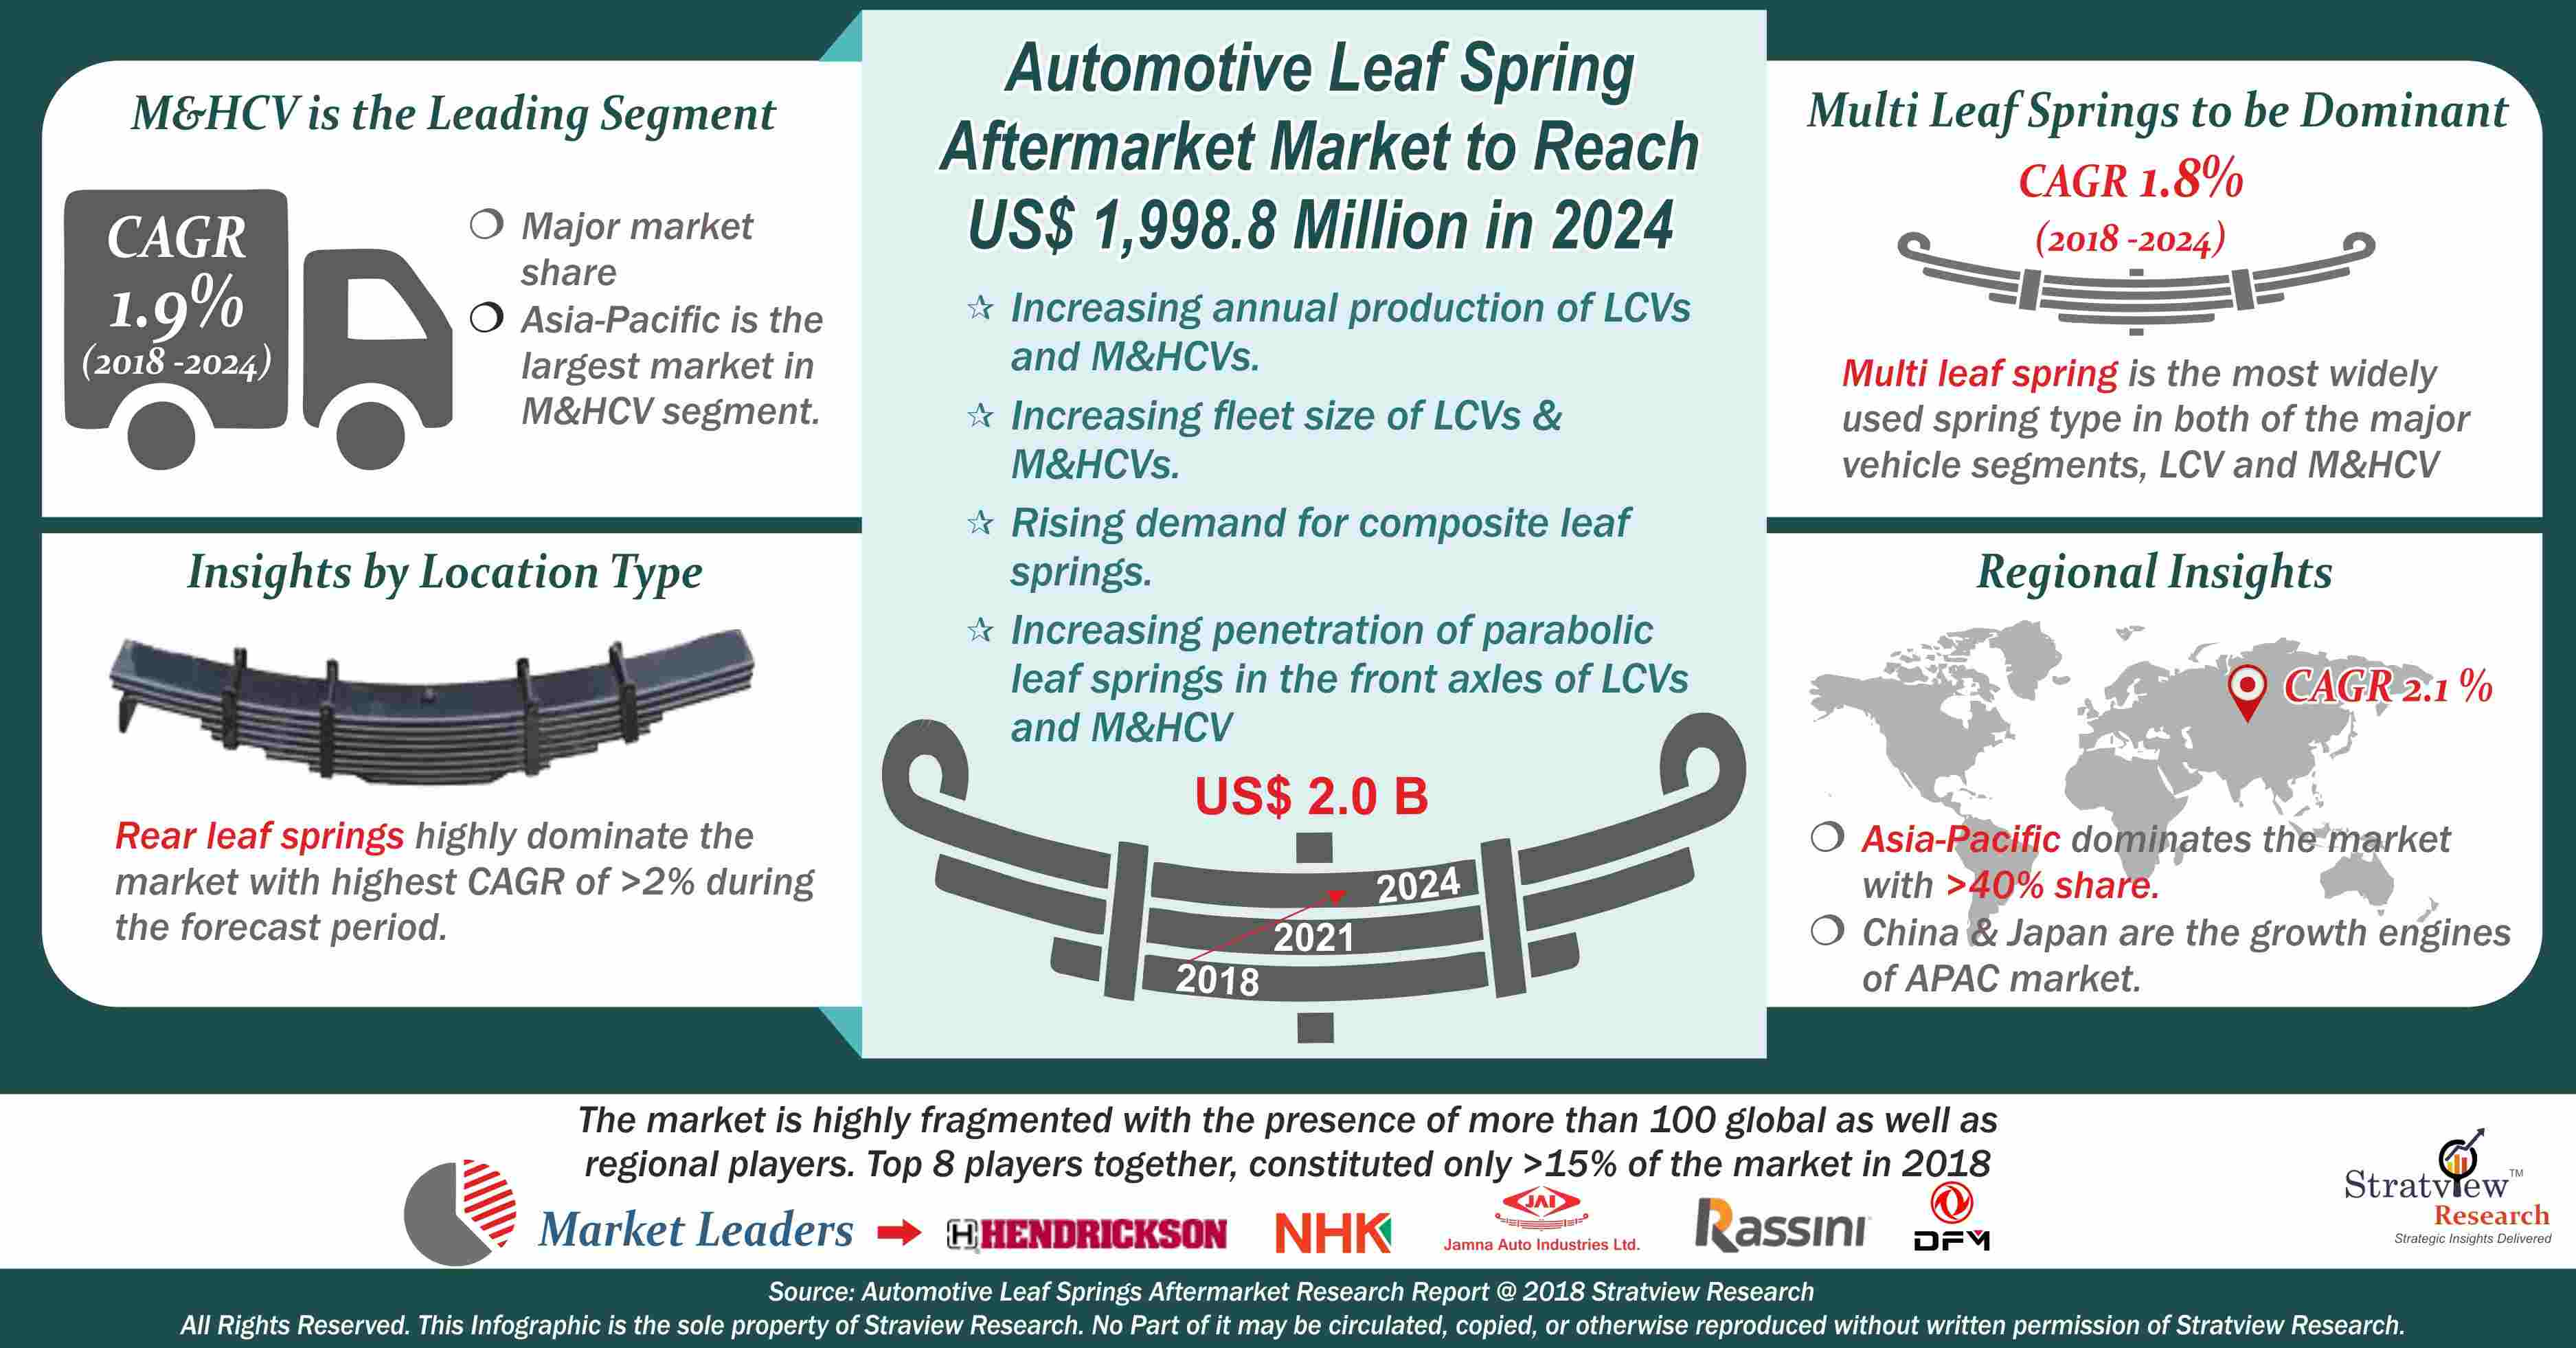 Automotive Leaf Spring Aftermarket Analysis